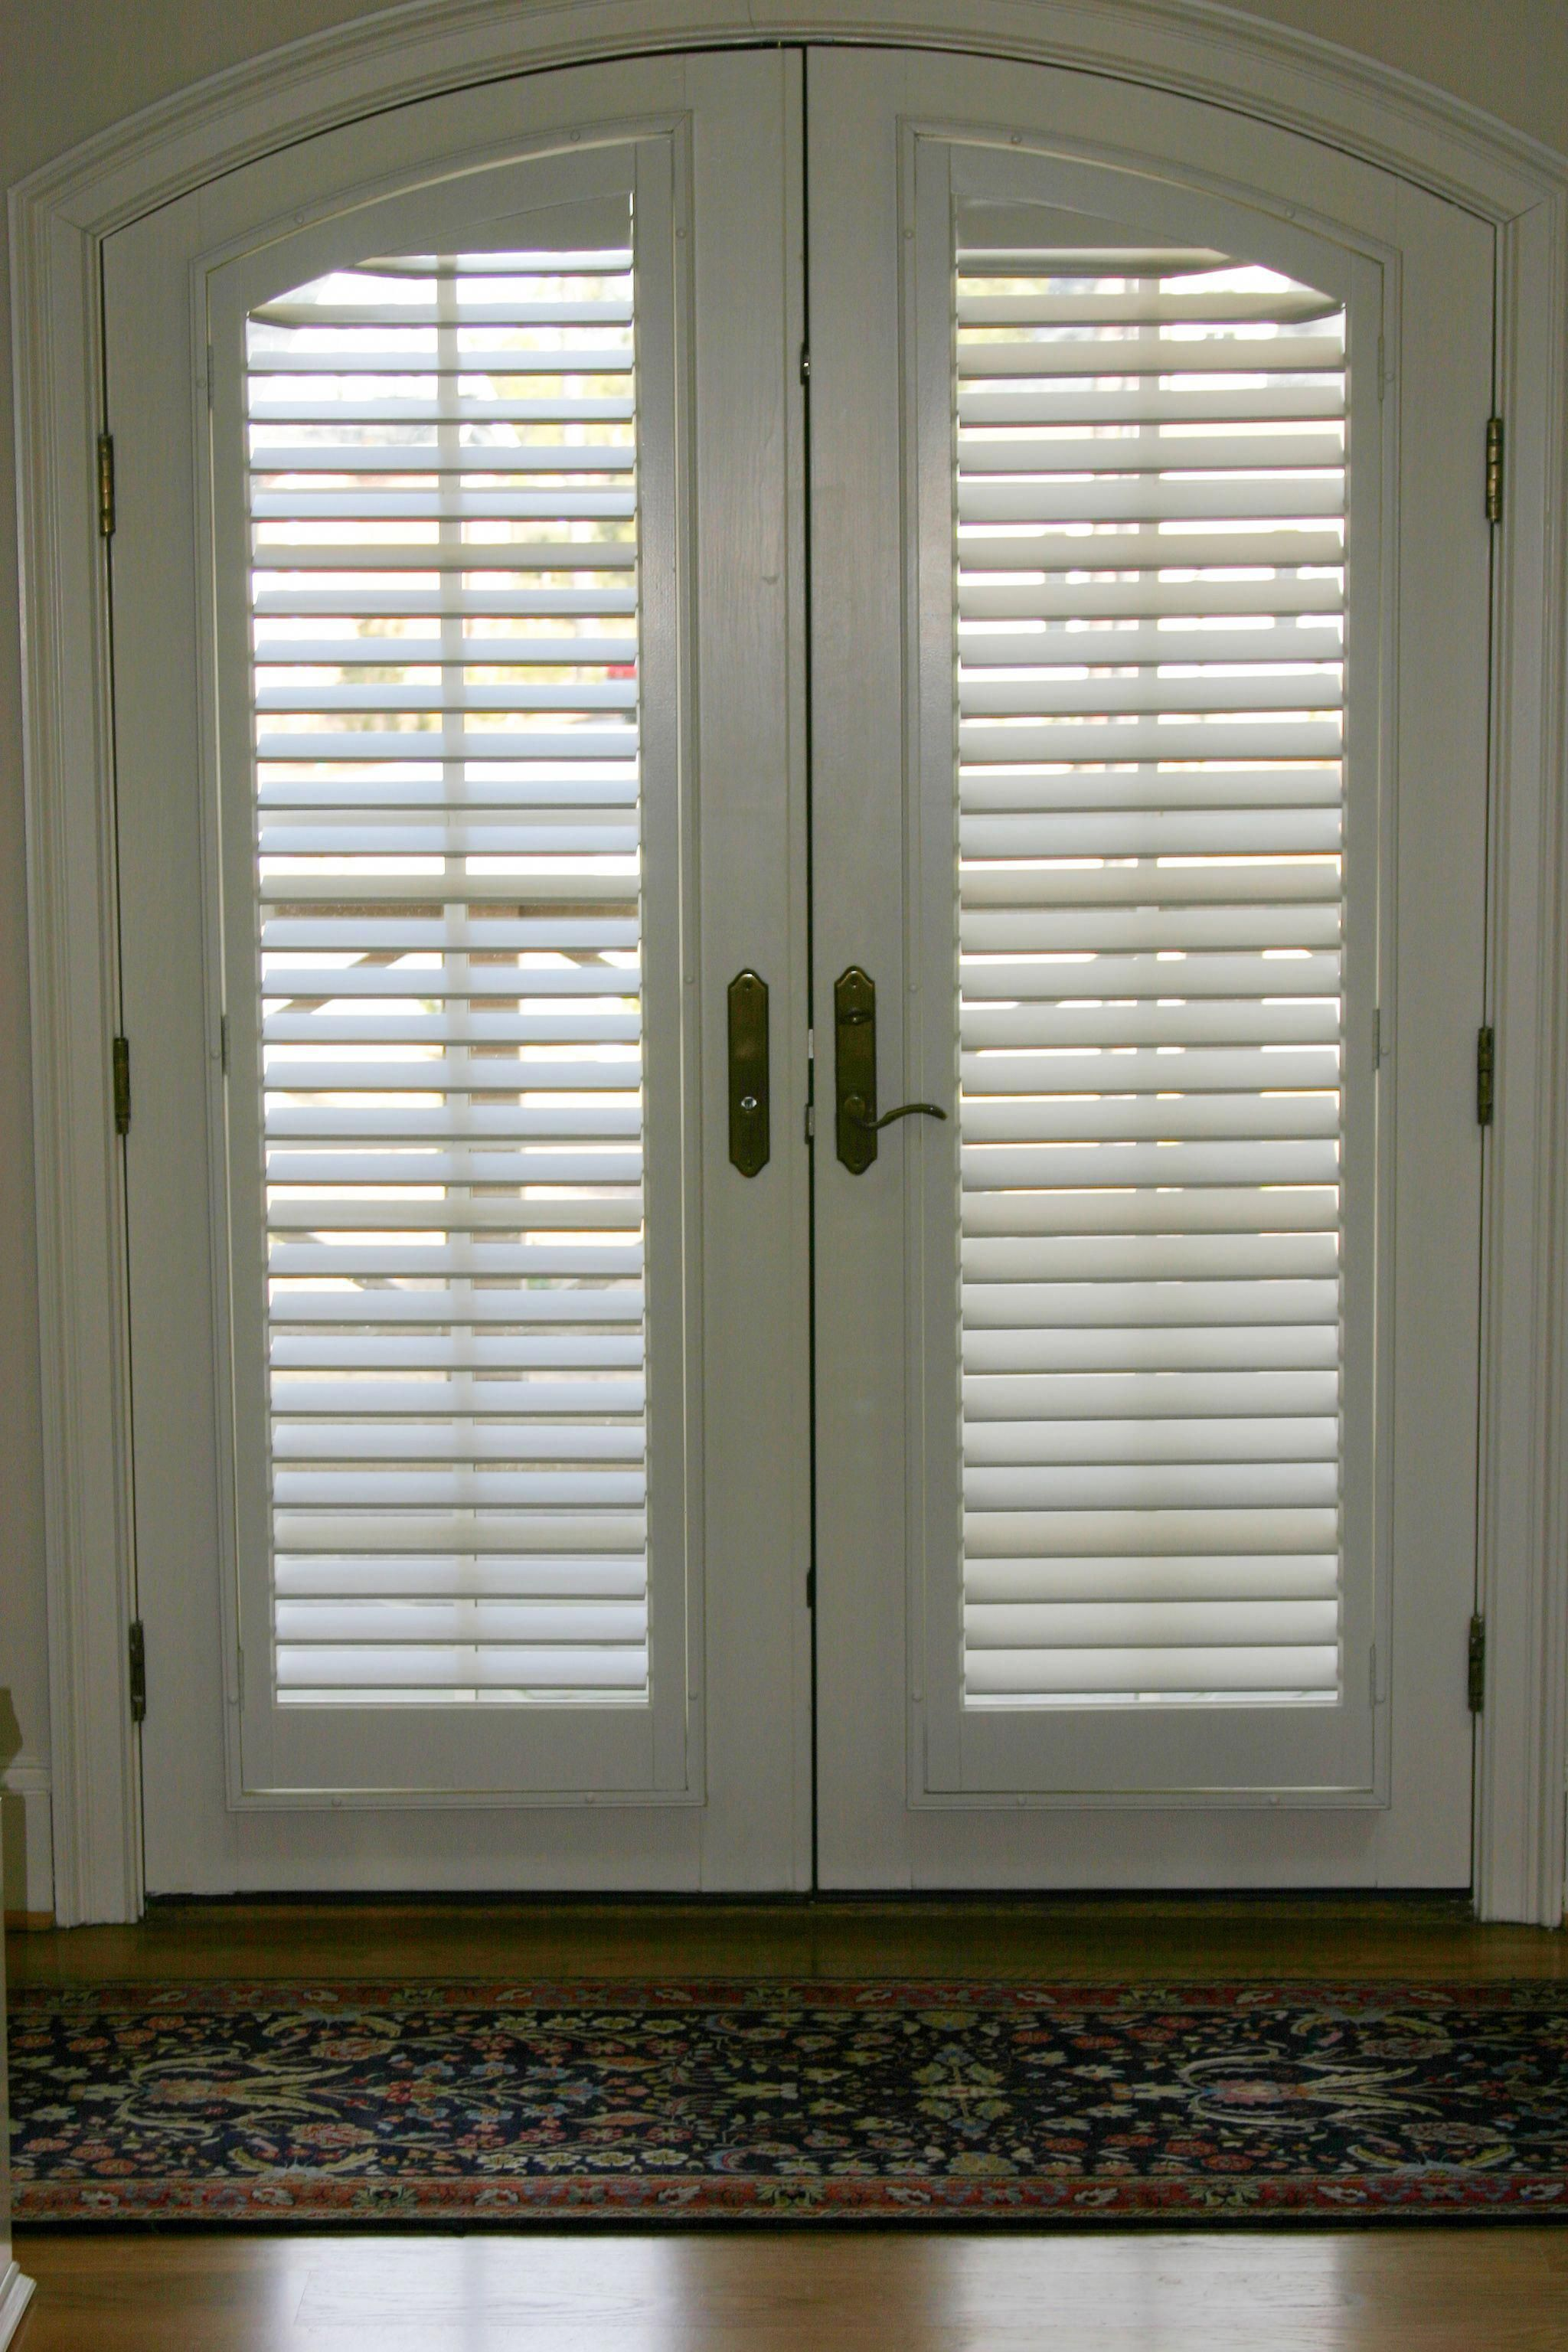 Beautiful french doors with arched windows covered with our custom plantation shutters plantation shutters look great from the inside and outside views